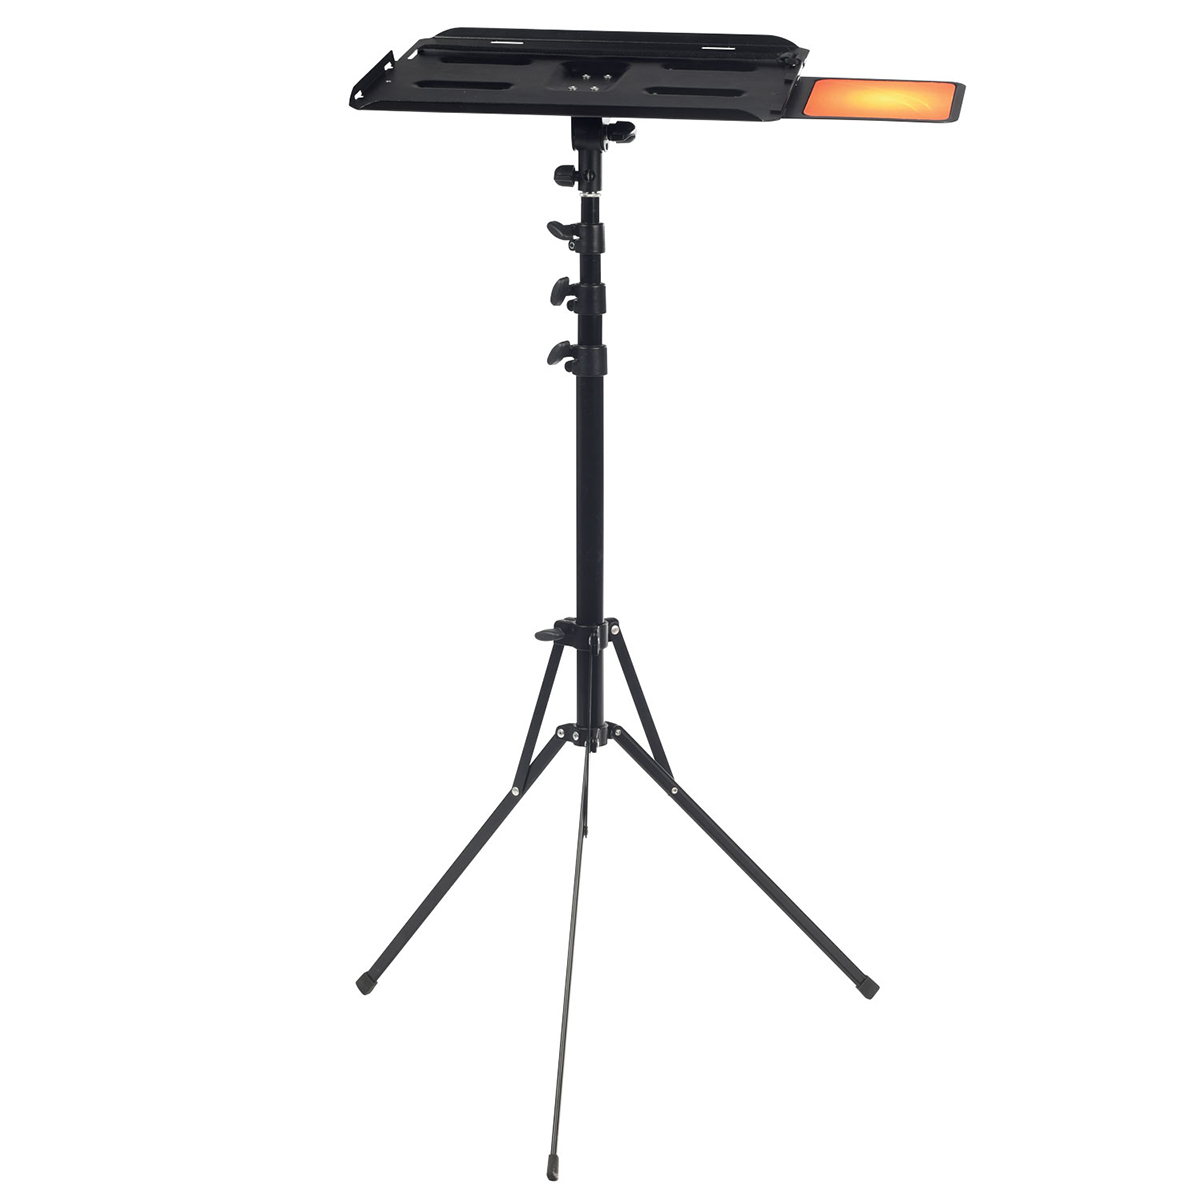 405001_Tether-Tray_E_STAND.jpg